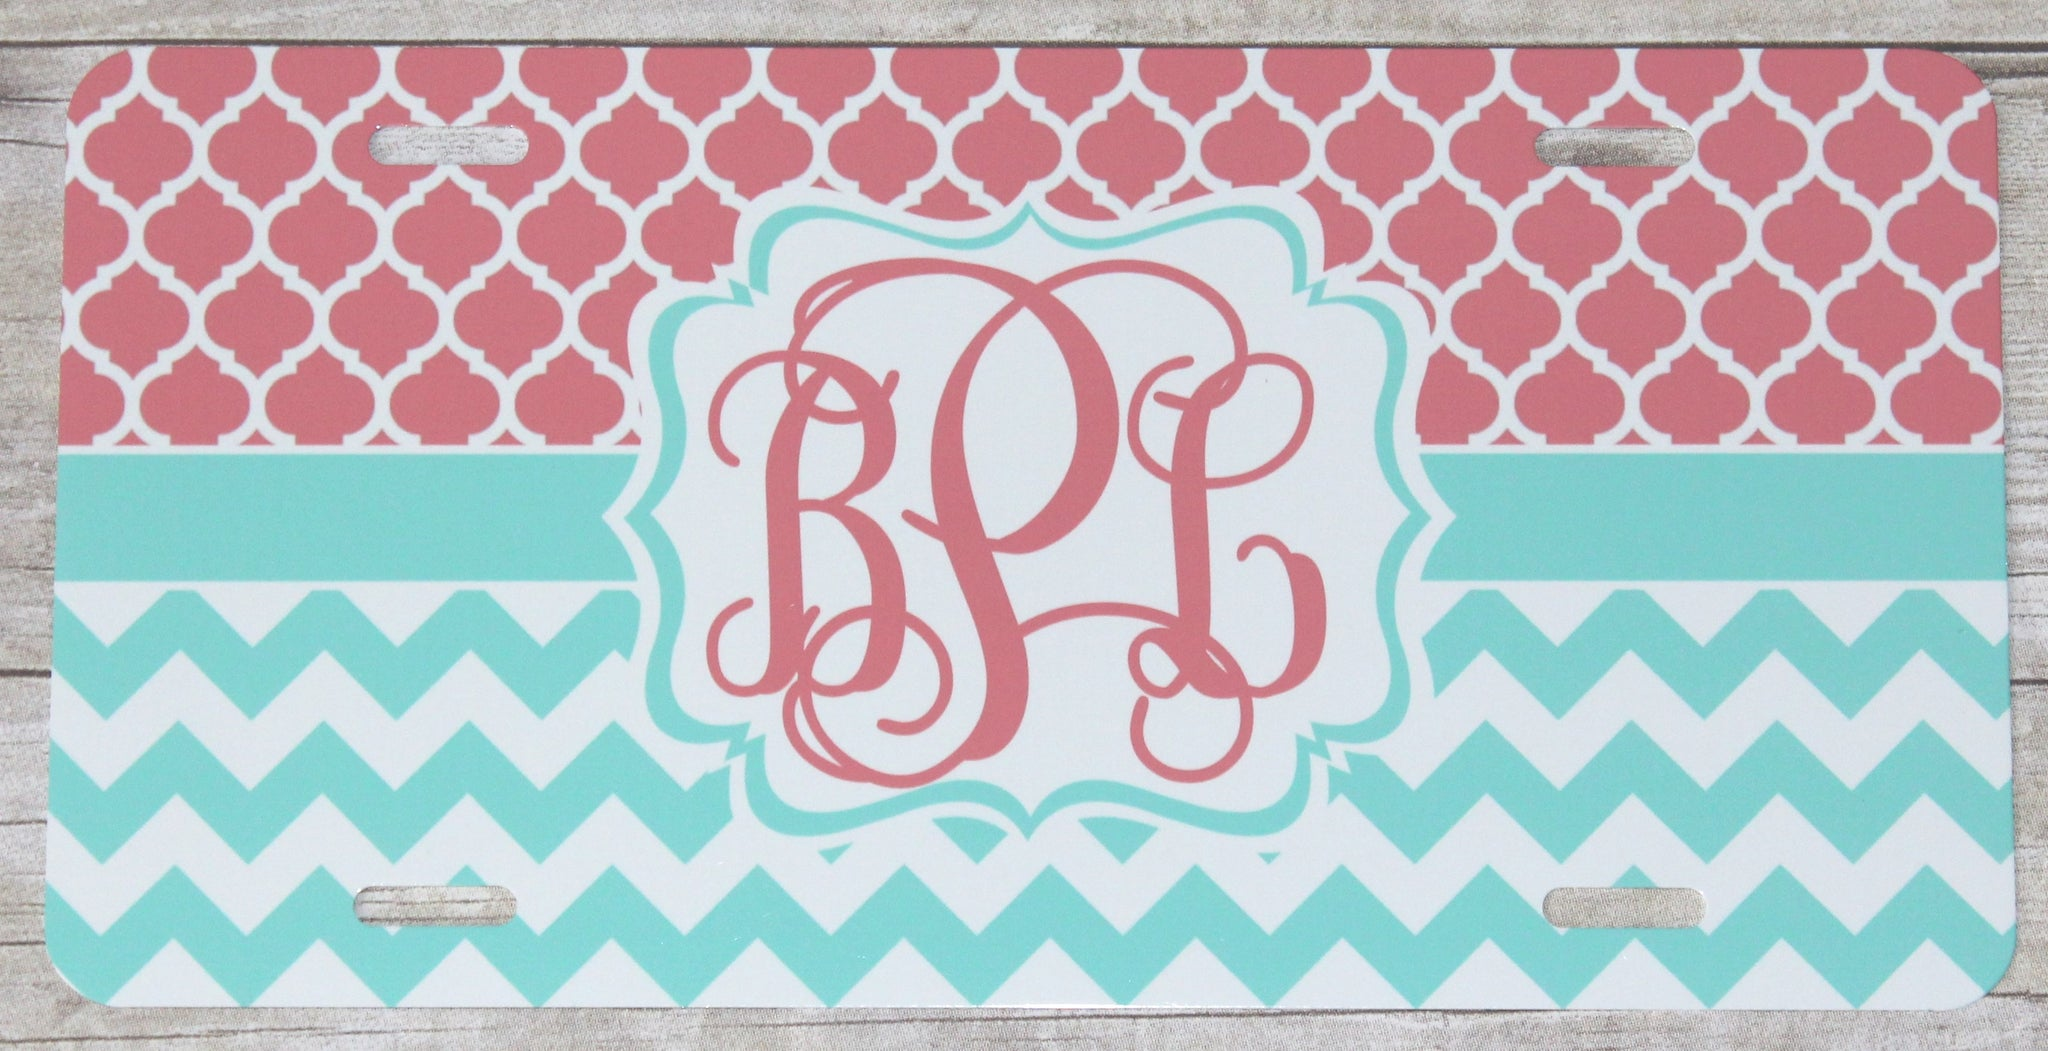 Coral & Turquoise Automobile License Plates Monogrammed or Blank